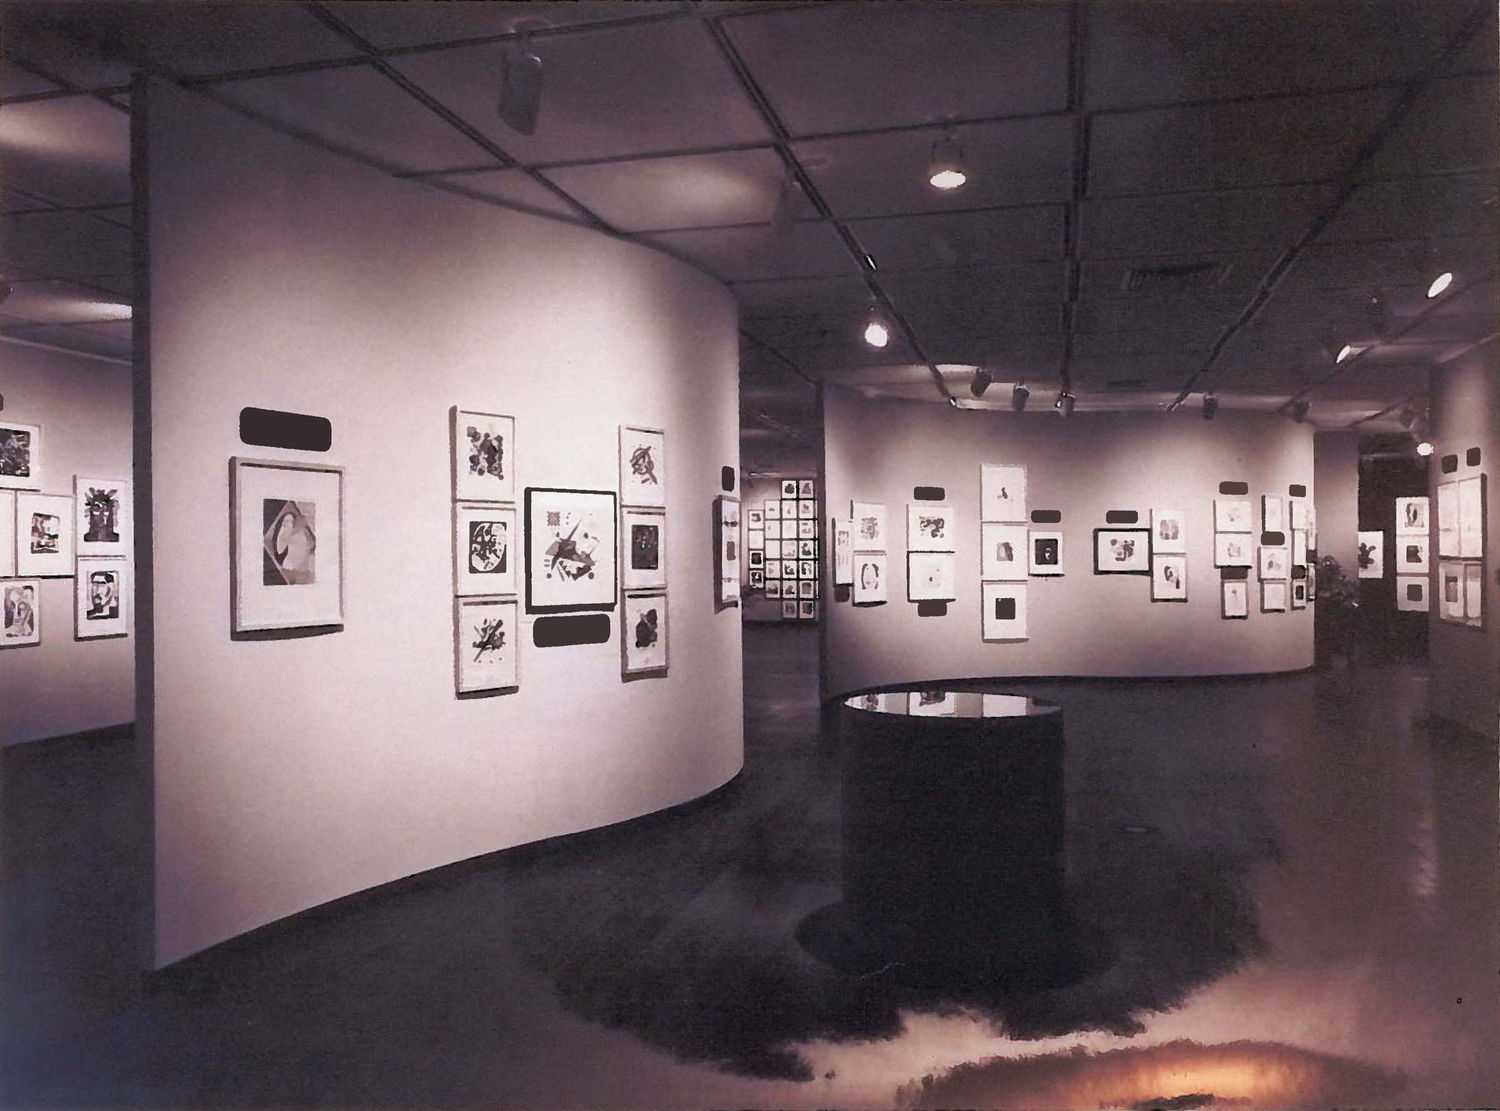 Installation view of The Fred Grunwald Collection: A Memorial Exhibition, Grunwald Graphic Arts Foundation, Dickson Art Center, UCLA, 1966